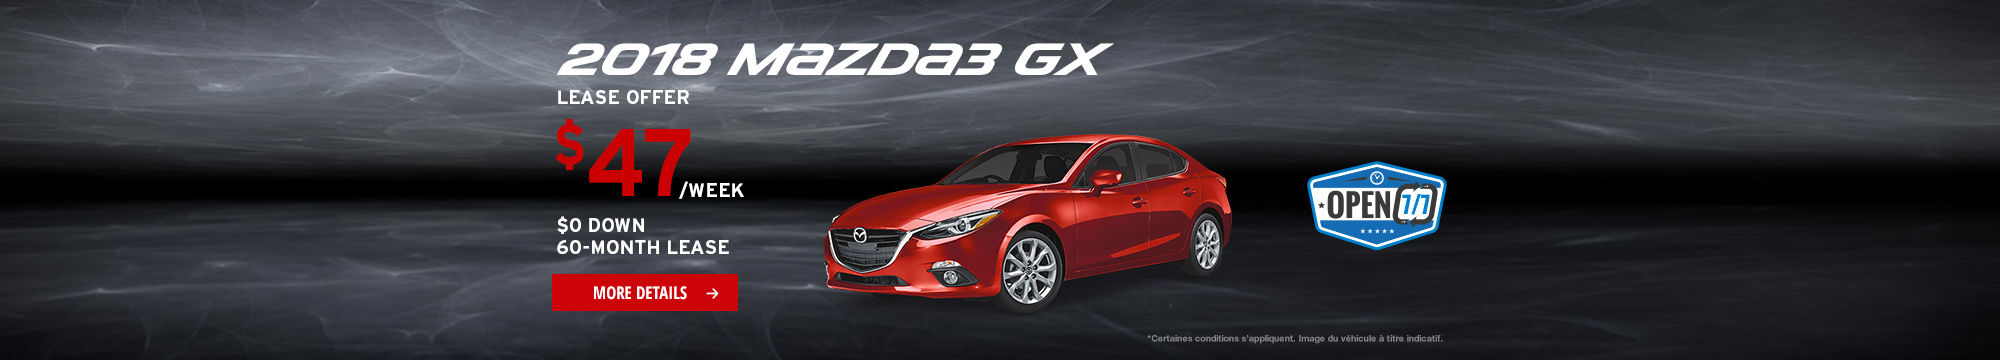 Upgrade to Mazda Event - Mazda3